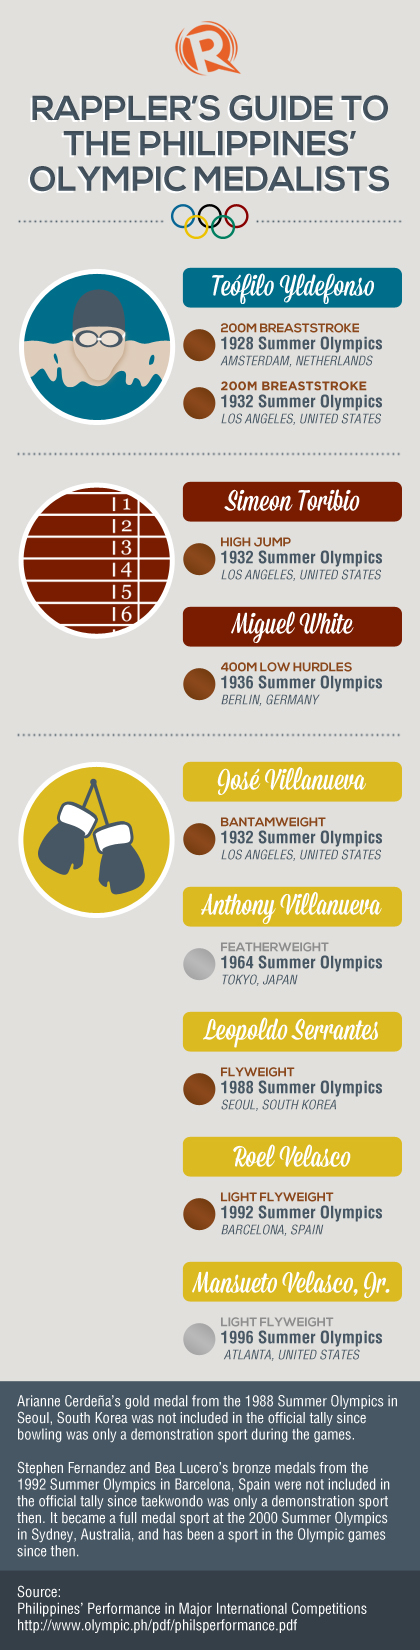 INFOGRAPHIC: Olympic medals won by the Philippines